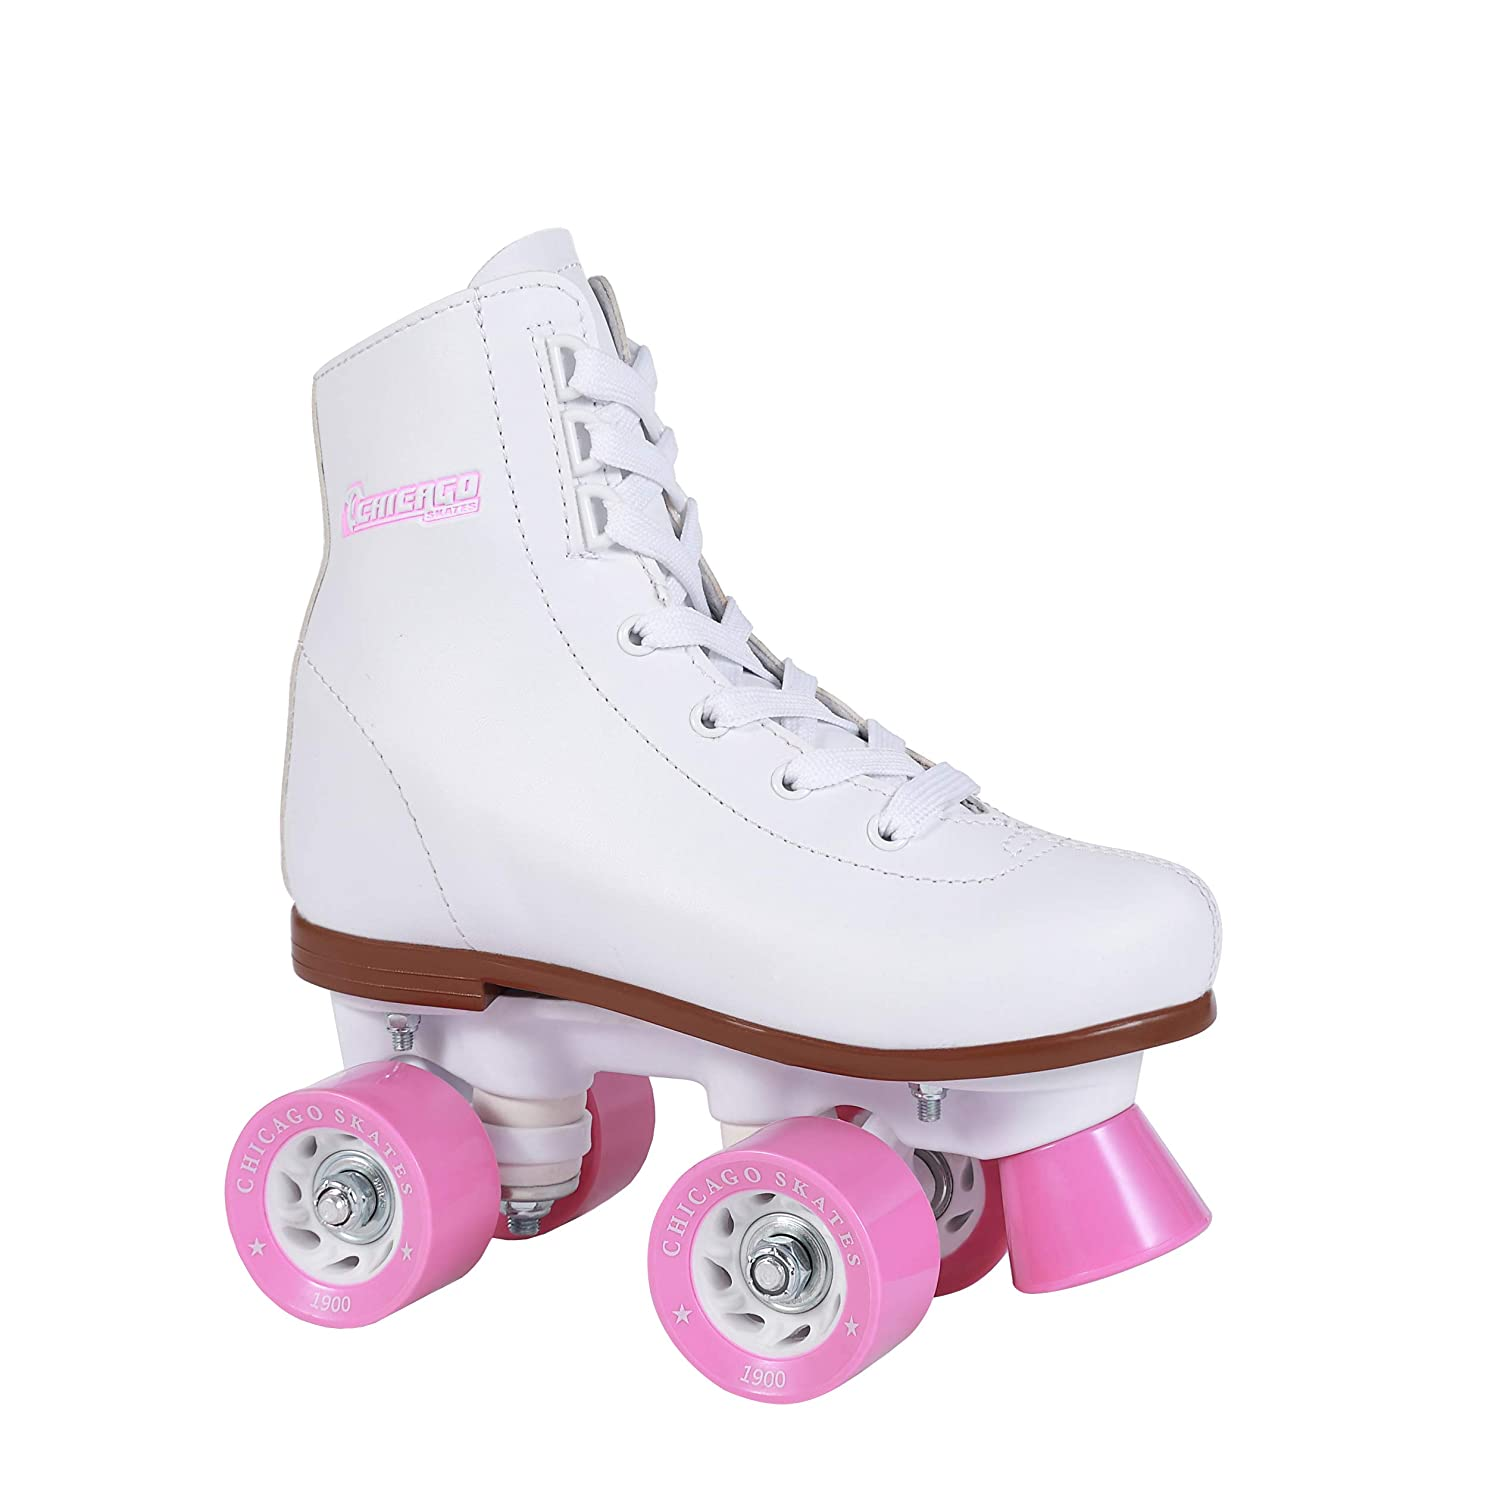 Top 10 Best Roller Skates (2020 Reviews & Buying Guide) 5